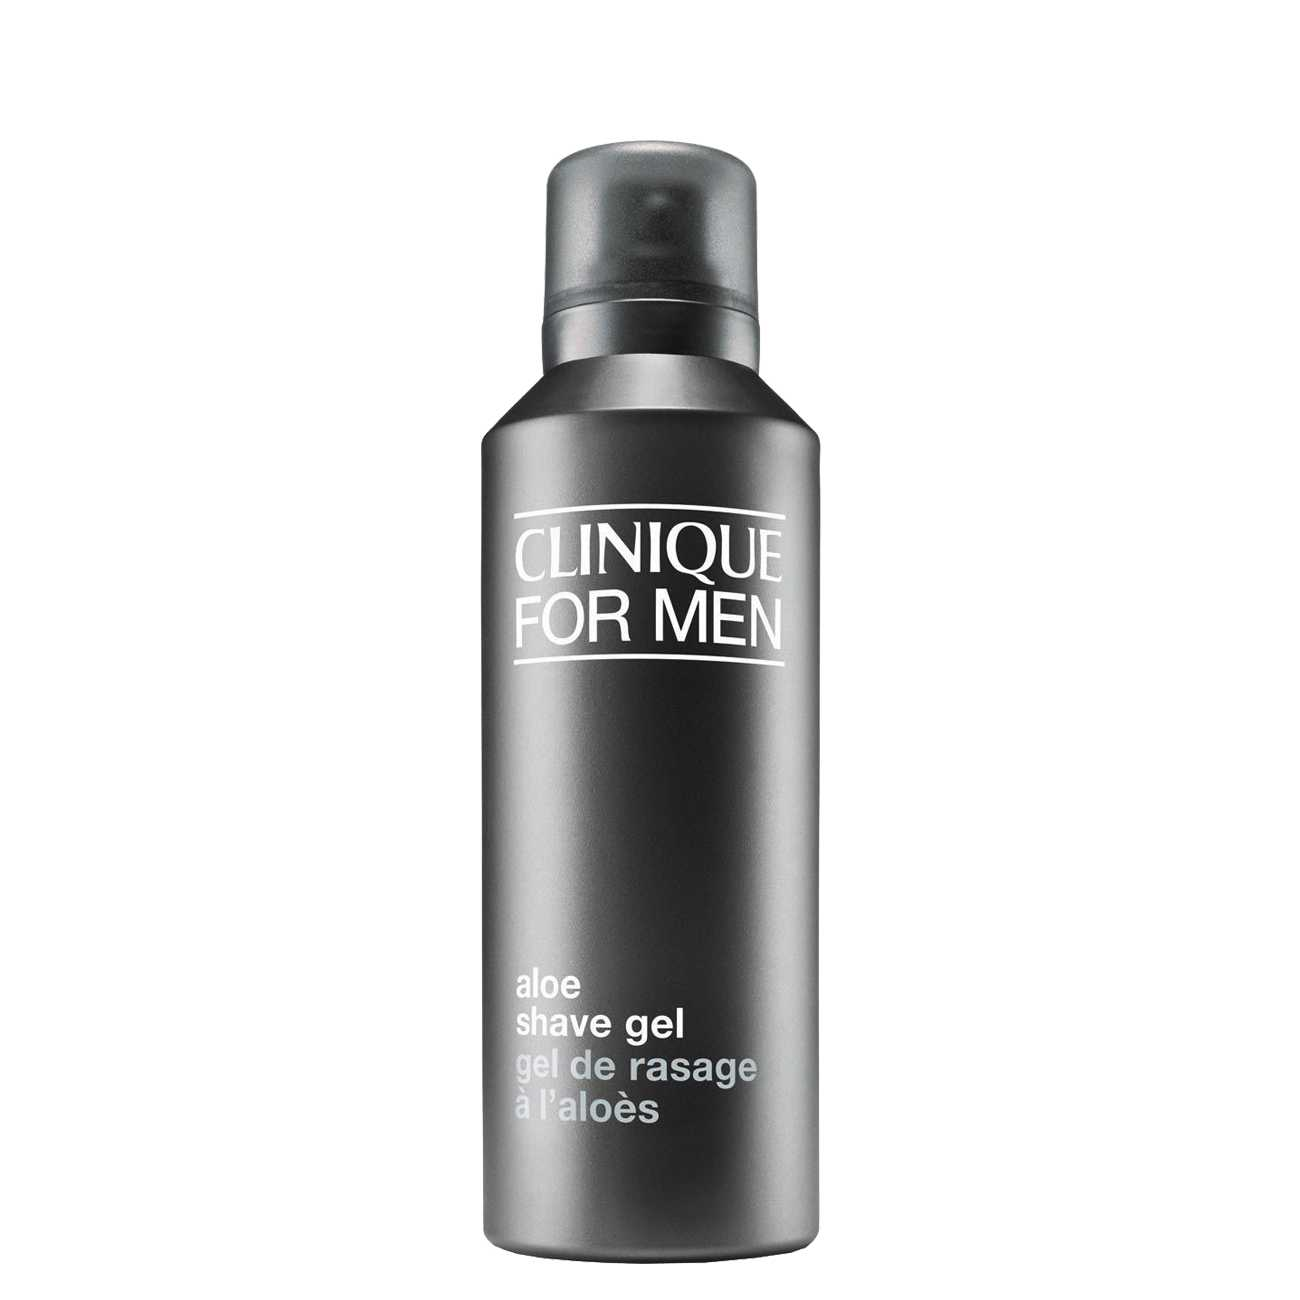 For Men Aloe Shave Gel 125 Ml imagine